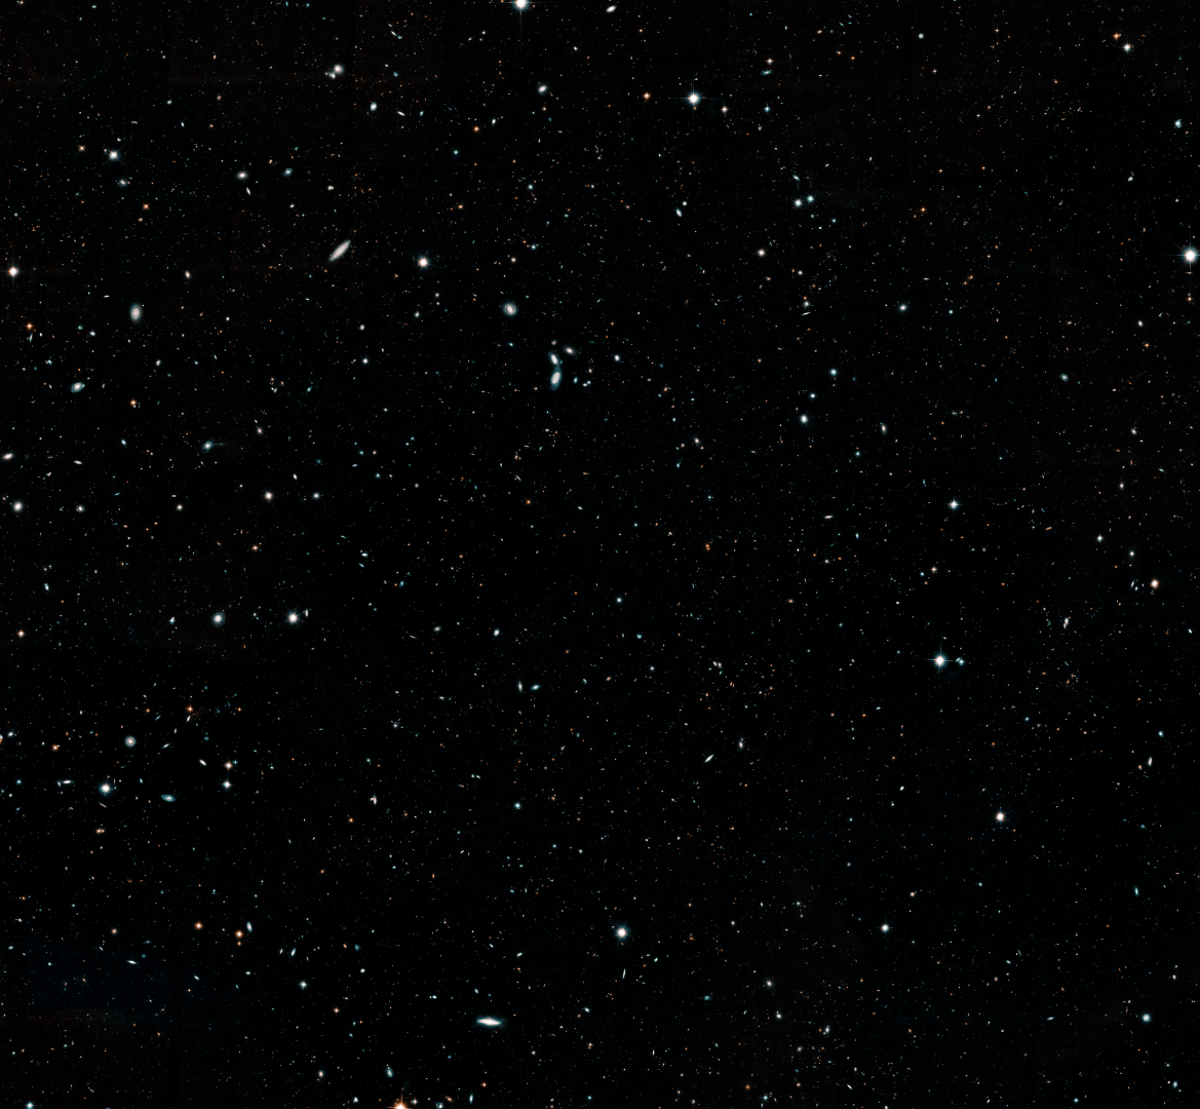 The Hubble Legacy Field contains over 265,000 galaxies.Credit:NASA, ESA, G. Illingworth and D. Magee (University of California, Santa Cruz), K. Whitaker (University of Connecticut), R. Bouwens (Leiden University), P. Oesch (University of Geneva,) and the Hubble Legacy Field team